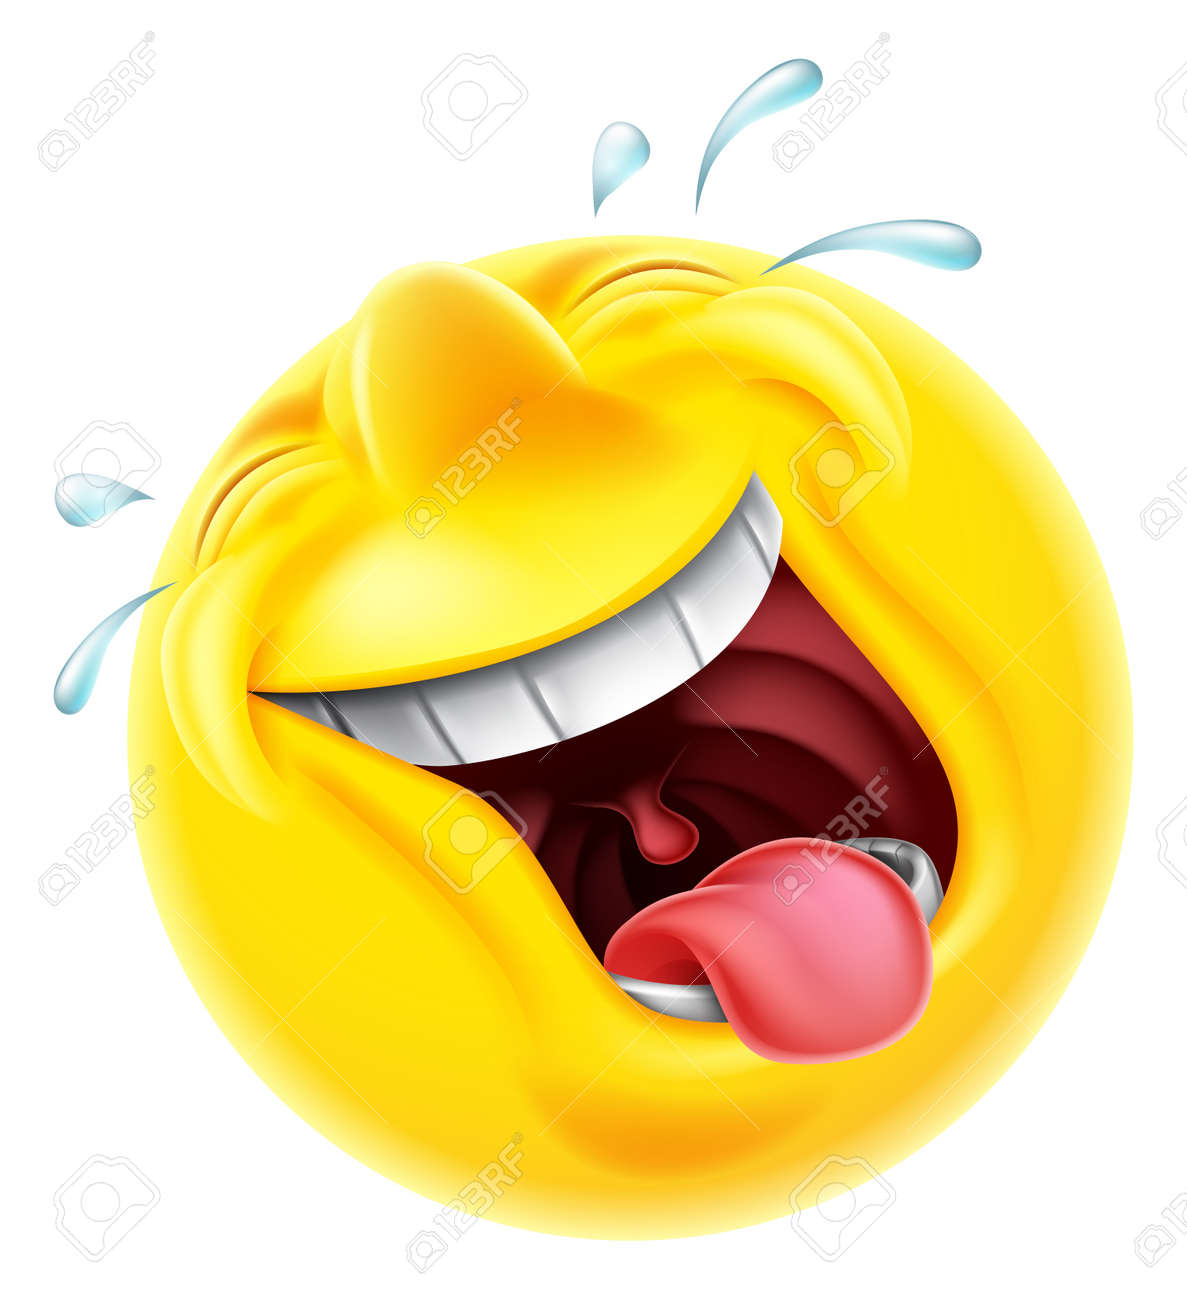 a very happy laughing emoji emoticon smiley face character laughing